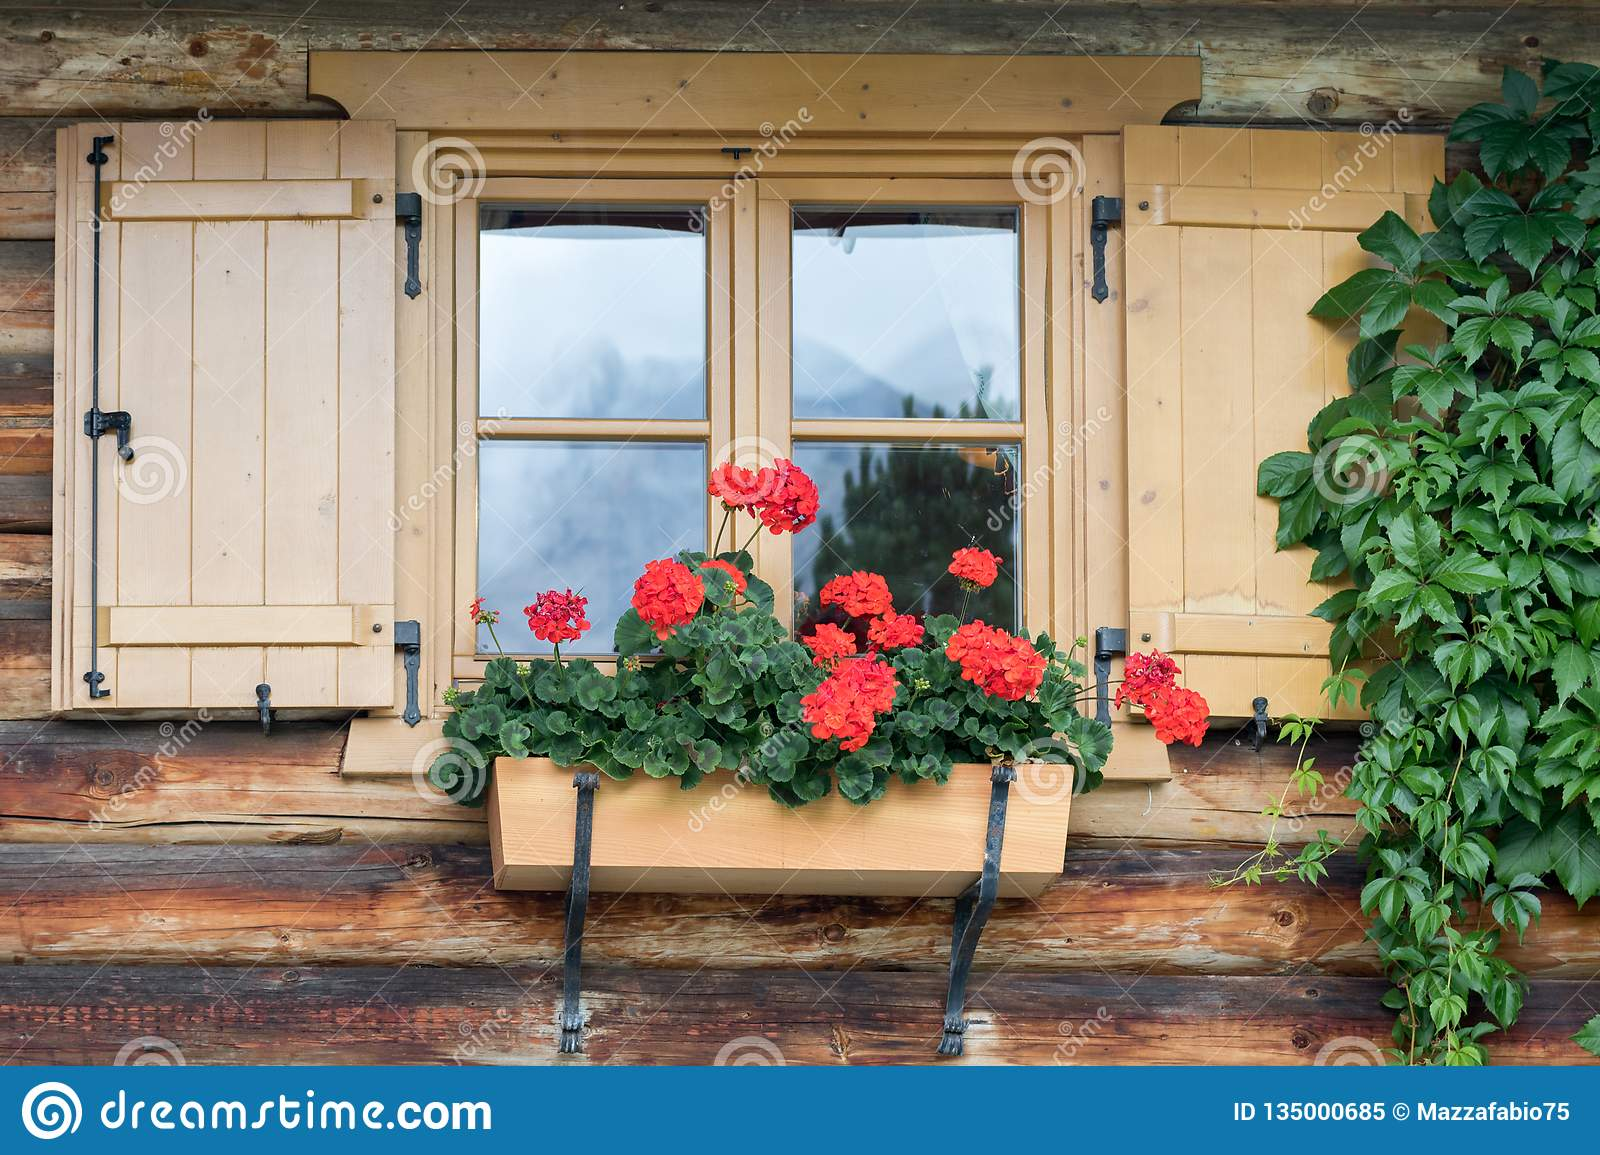 Red geraniums in a planter are hung on a window sill of a Tyrolean house